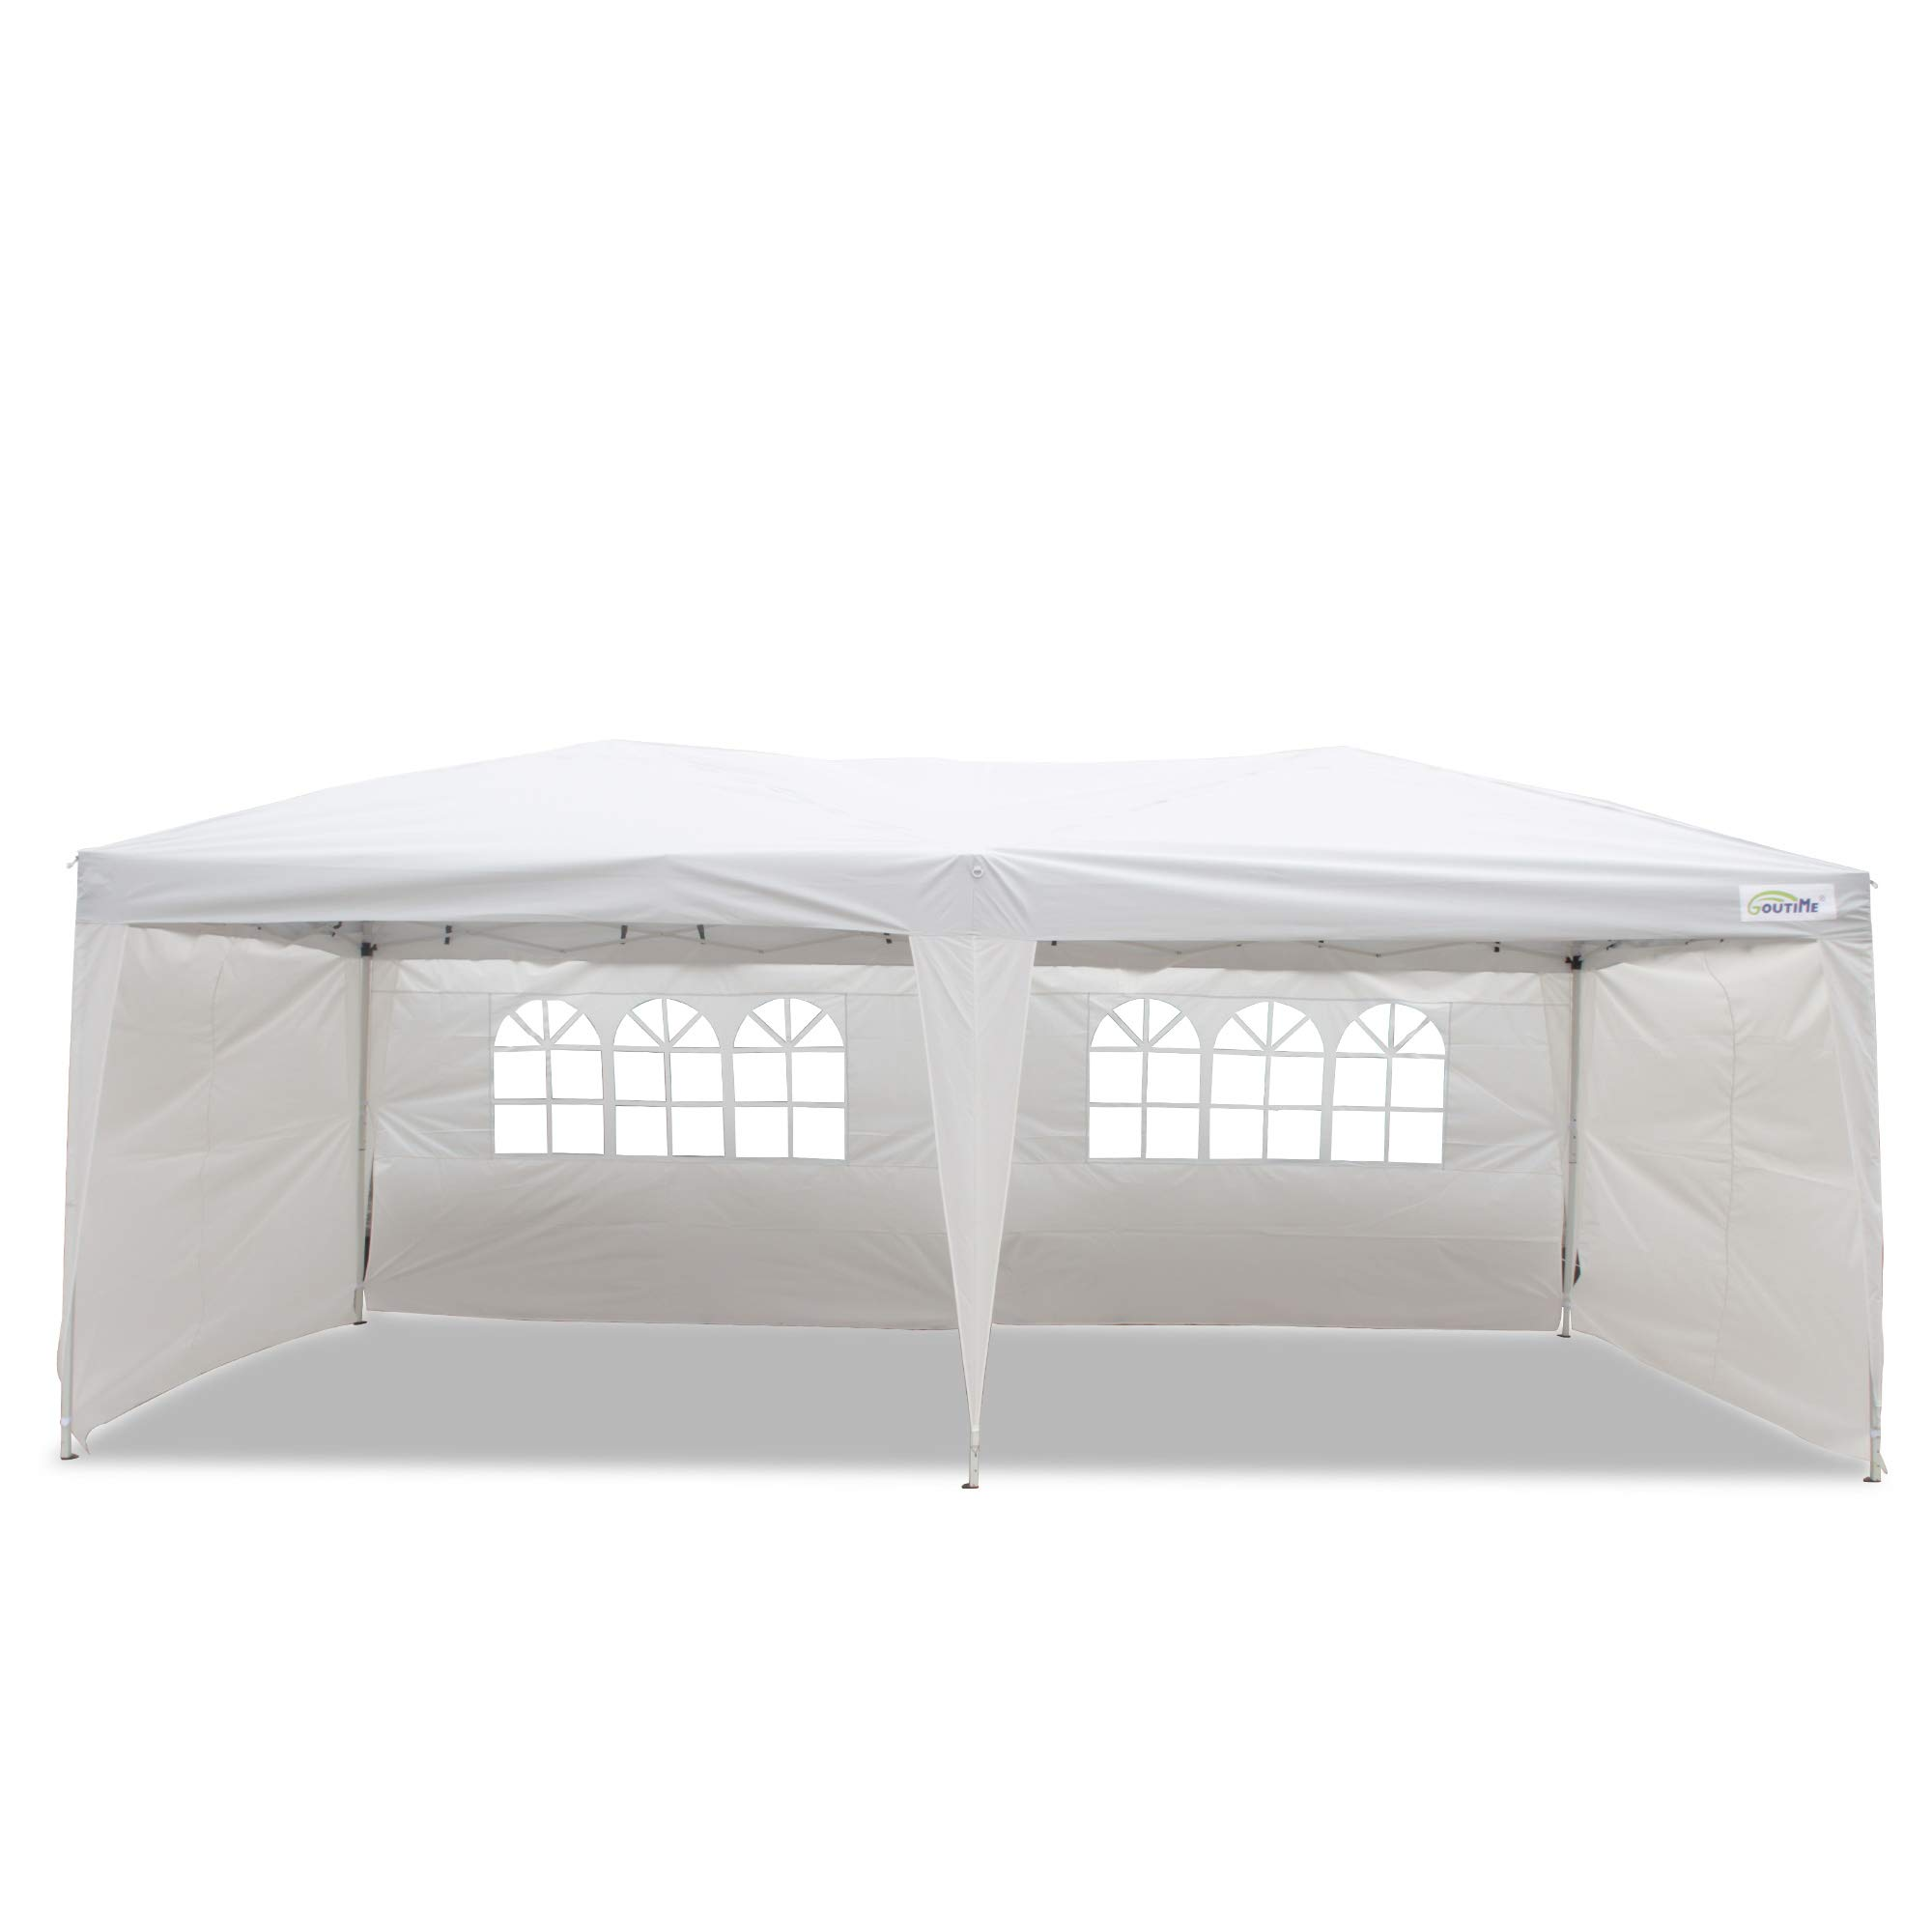 Goutime 10x20 Ft Ez Pop Up Canopy Tent with 4Pcs 10Ft Removable Sidewalls and Wheeled Bag for Outdoor Party Events by Goutime